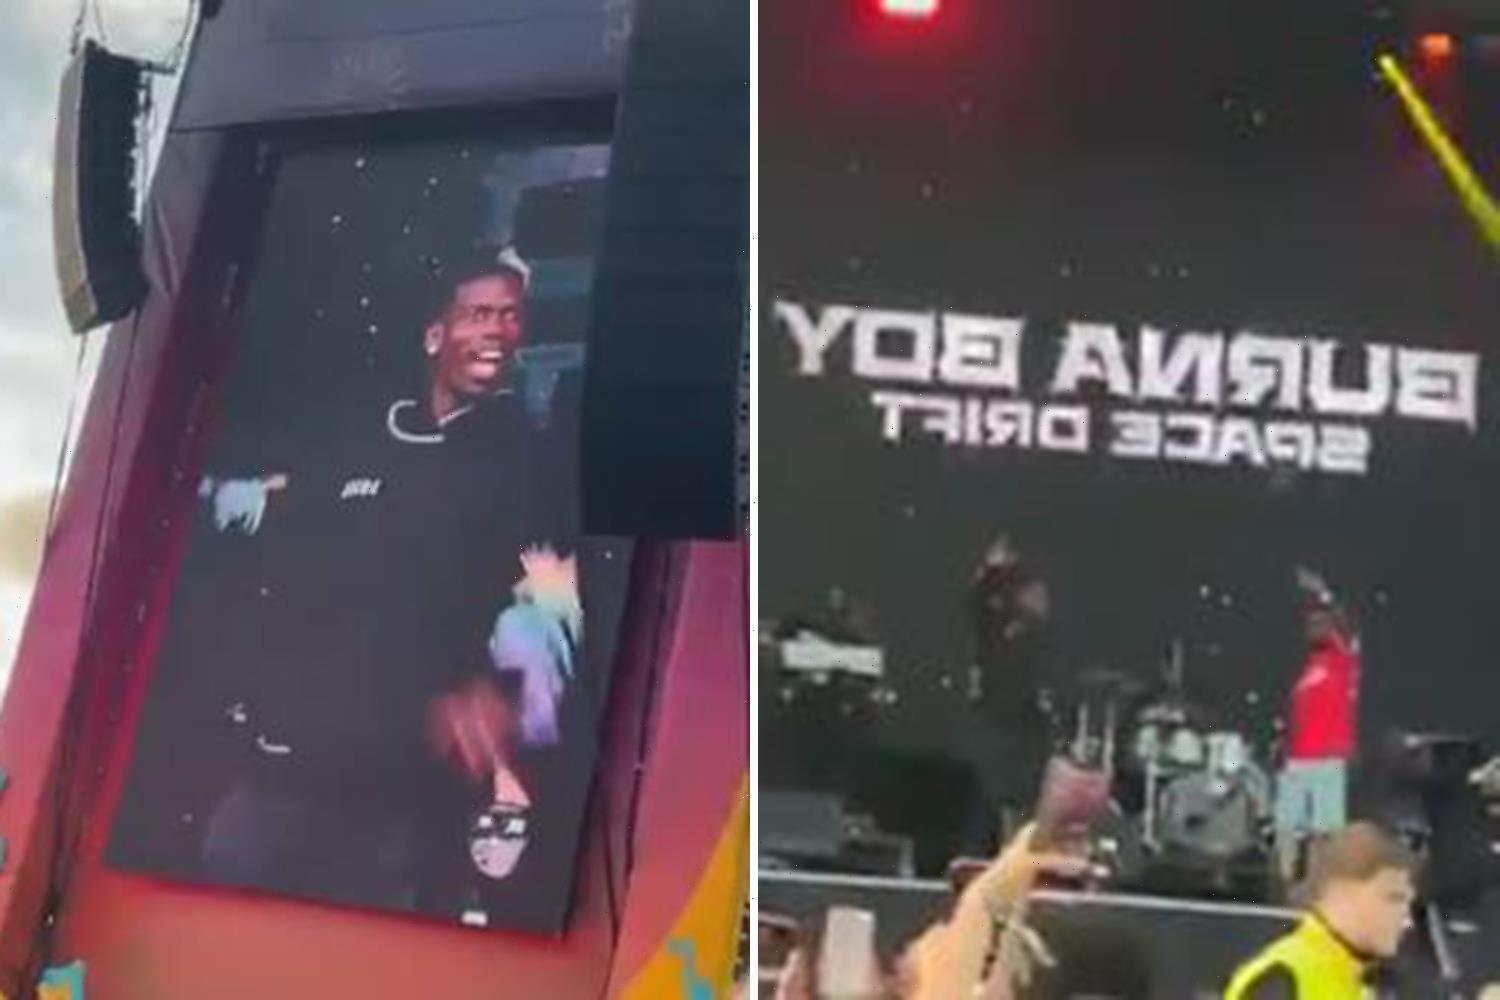 Watch Paul Pogba dancing on stage with rapper Burna Boy at Parklife festival after helping Man Utd beat Newcastle